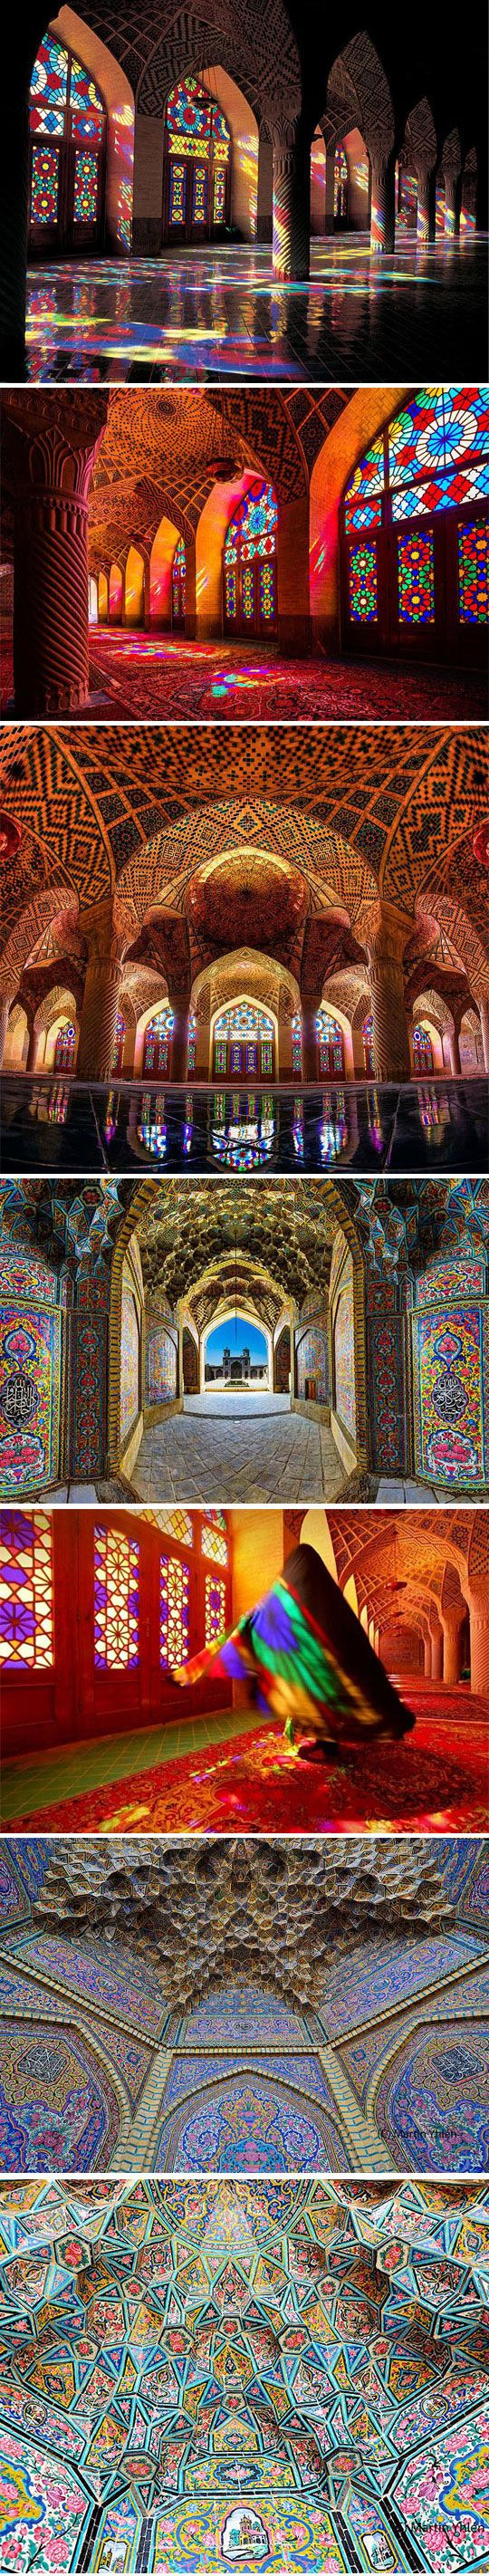 //A Stunning Mosque, Illuminated With All Of The Colors Of The Rainbow in Shirakawa, Iran #mosque